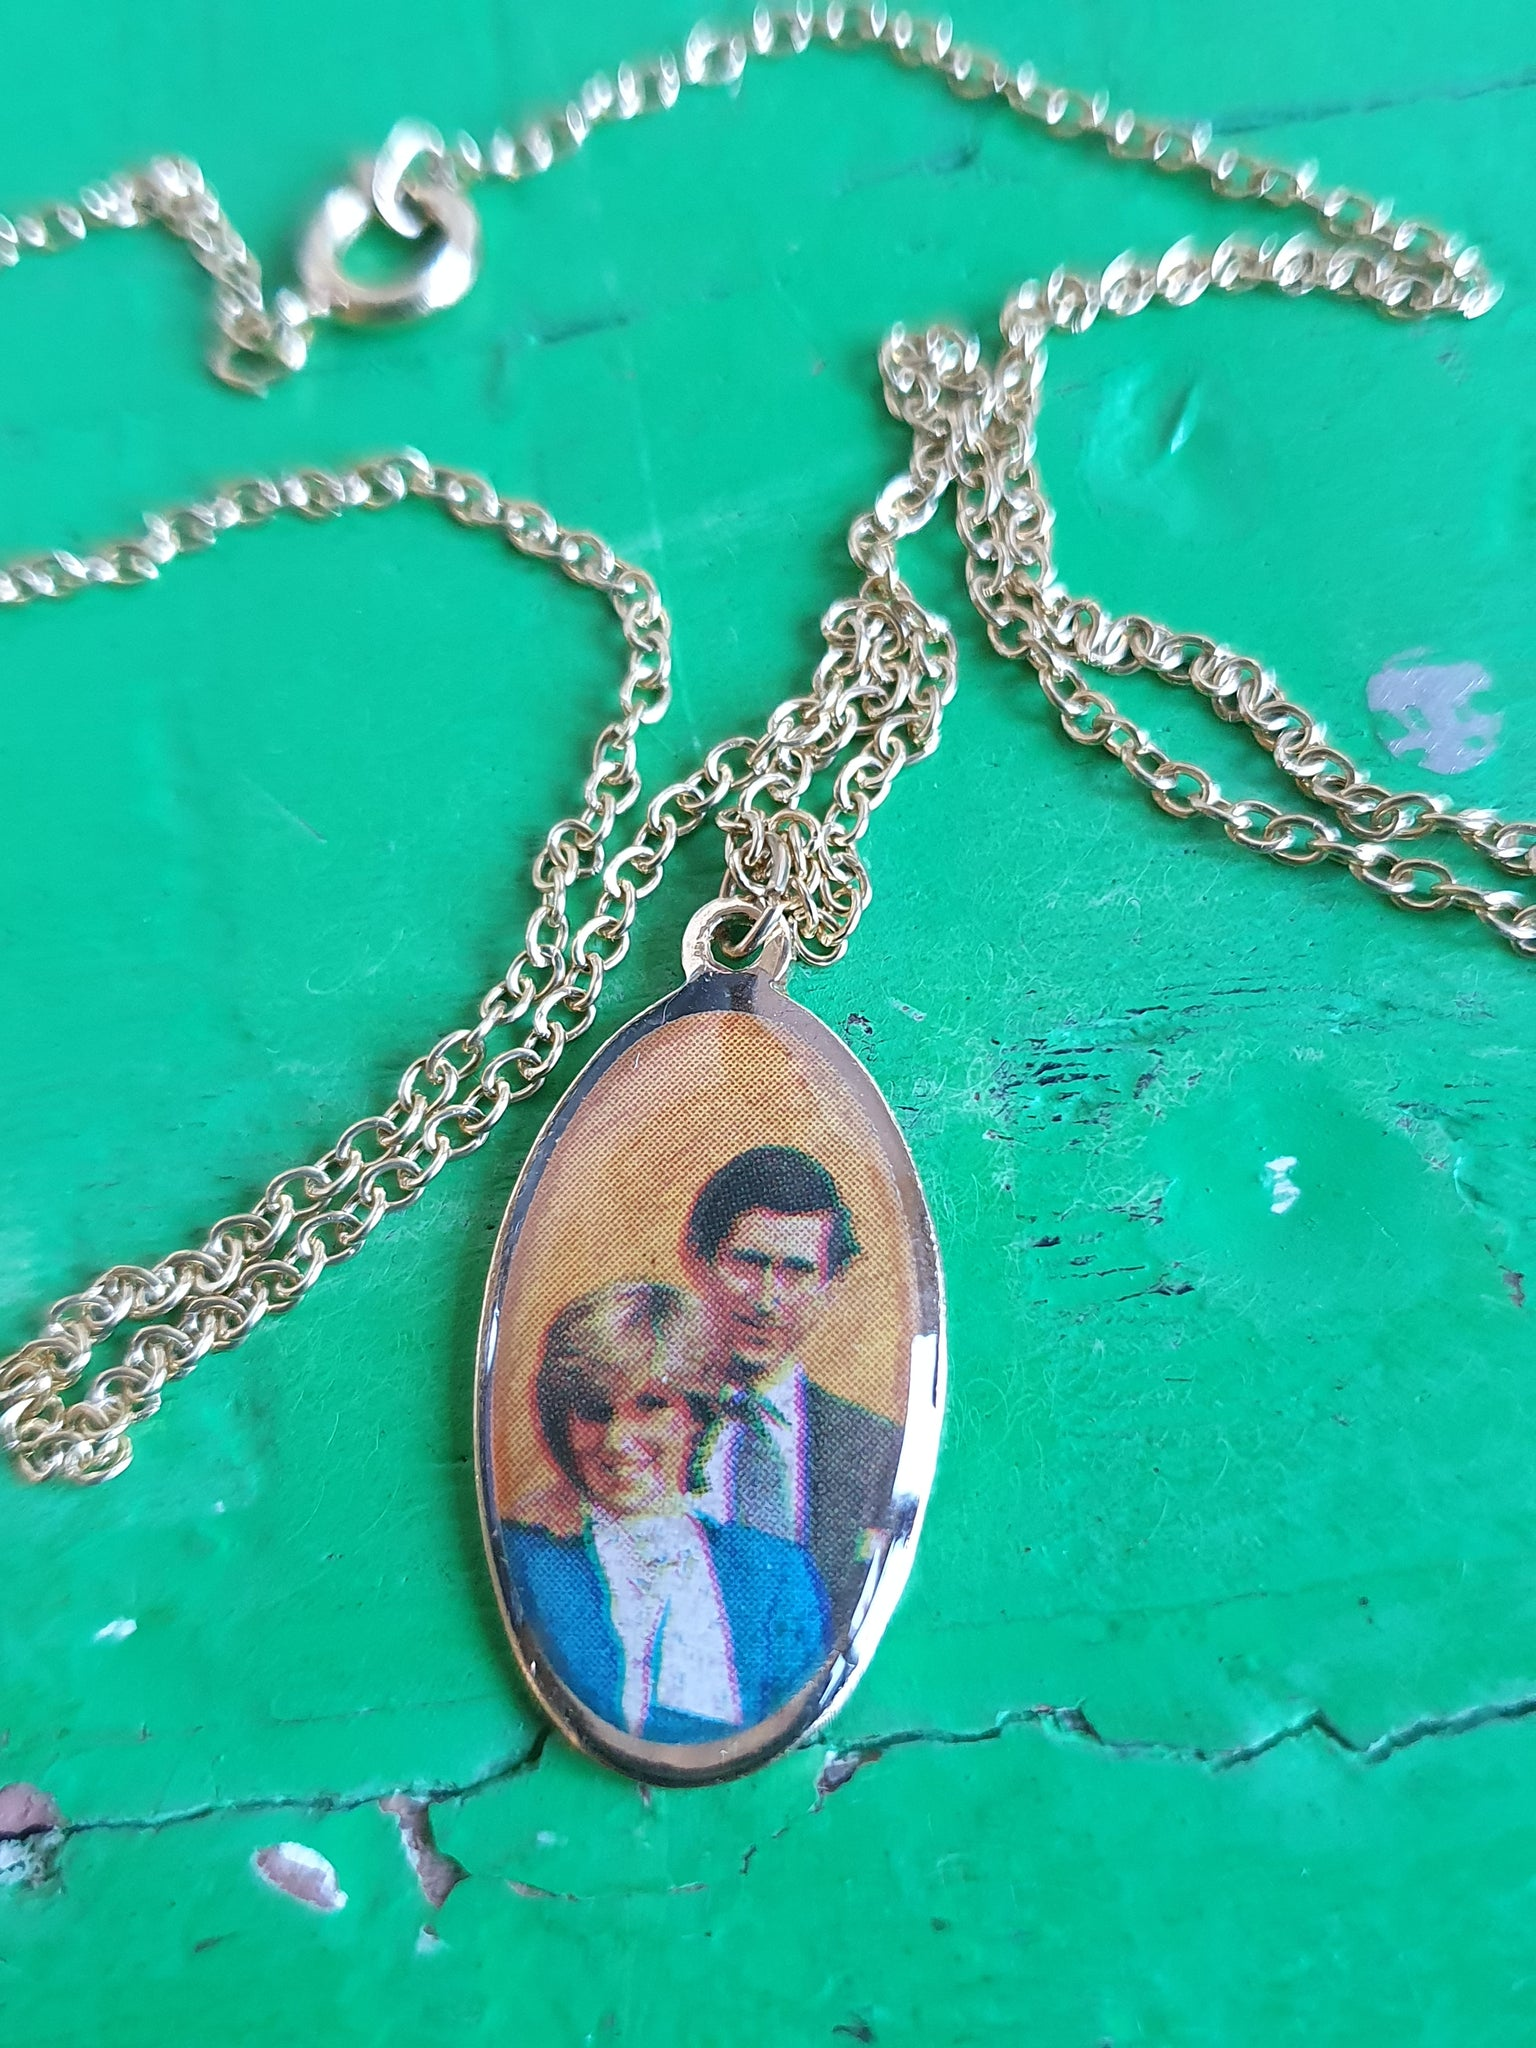 PRINCE CHARLES AND LADY DIANA PENDANT NECKLACE